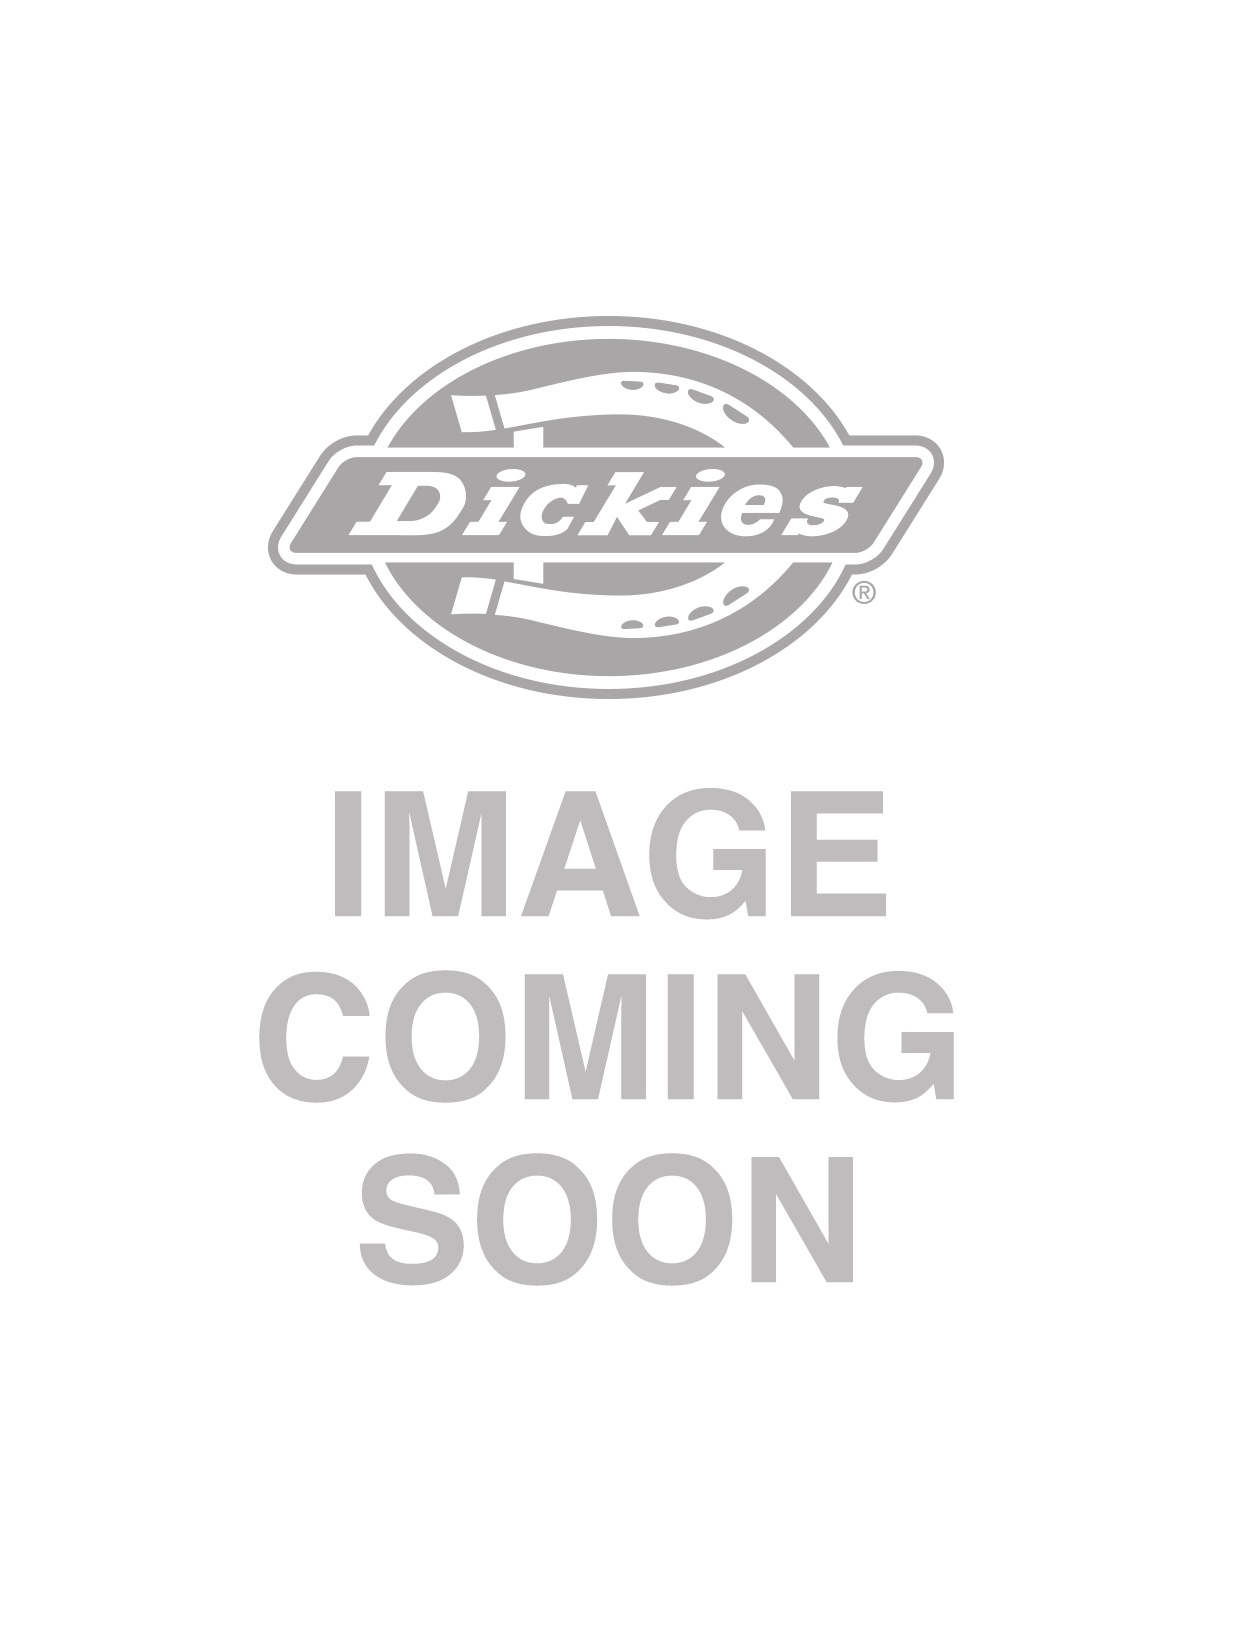 Dickies Womens Seabrook Sweatshirt